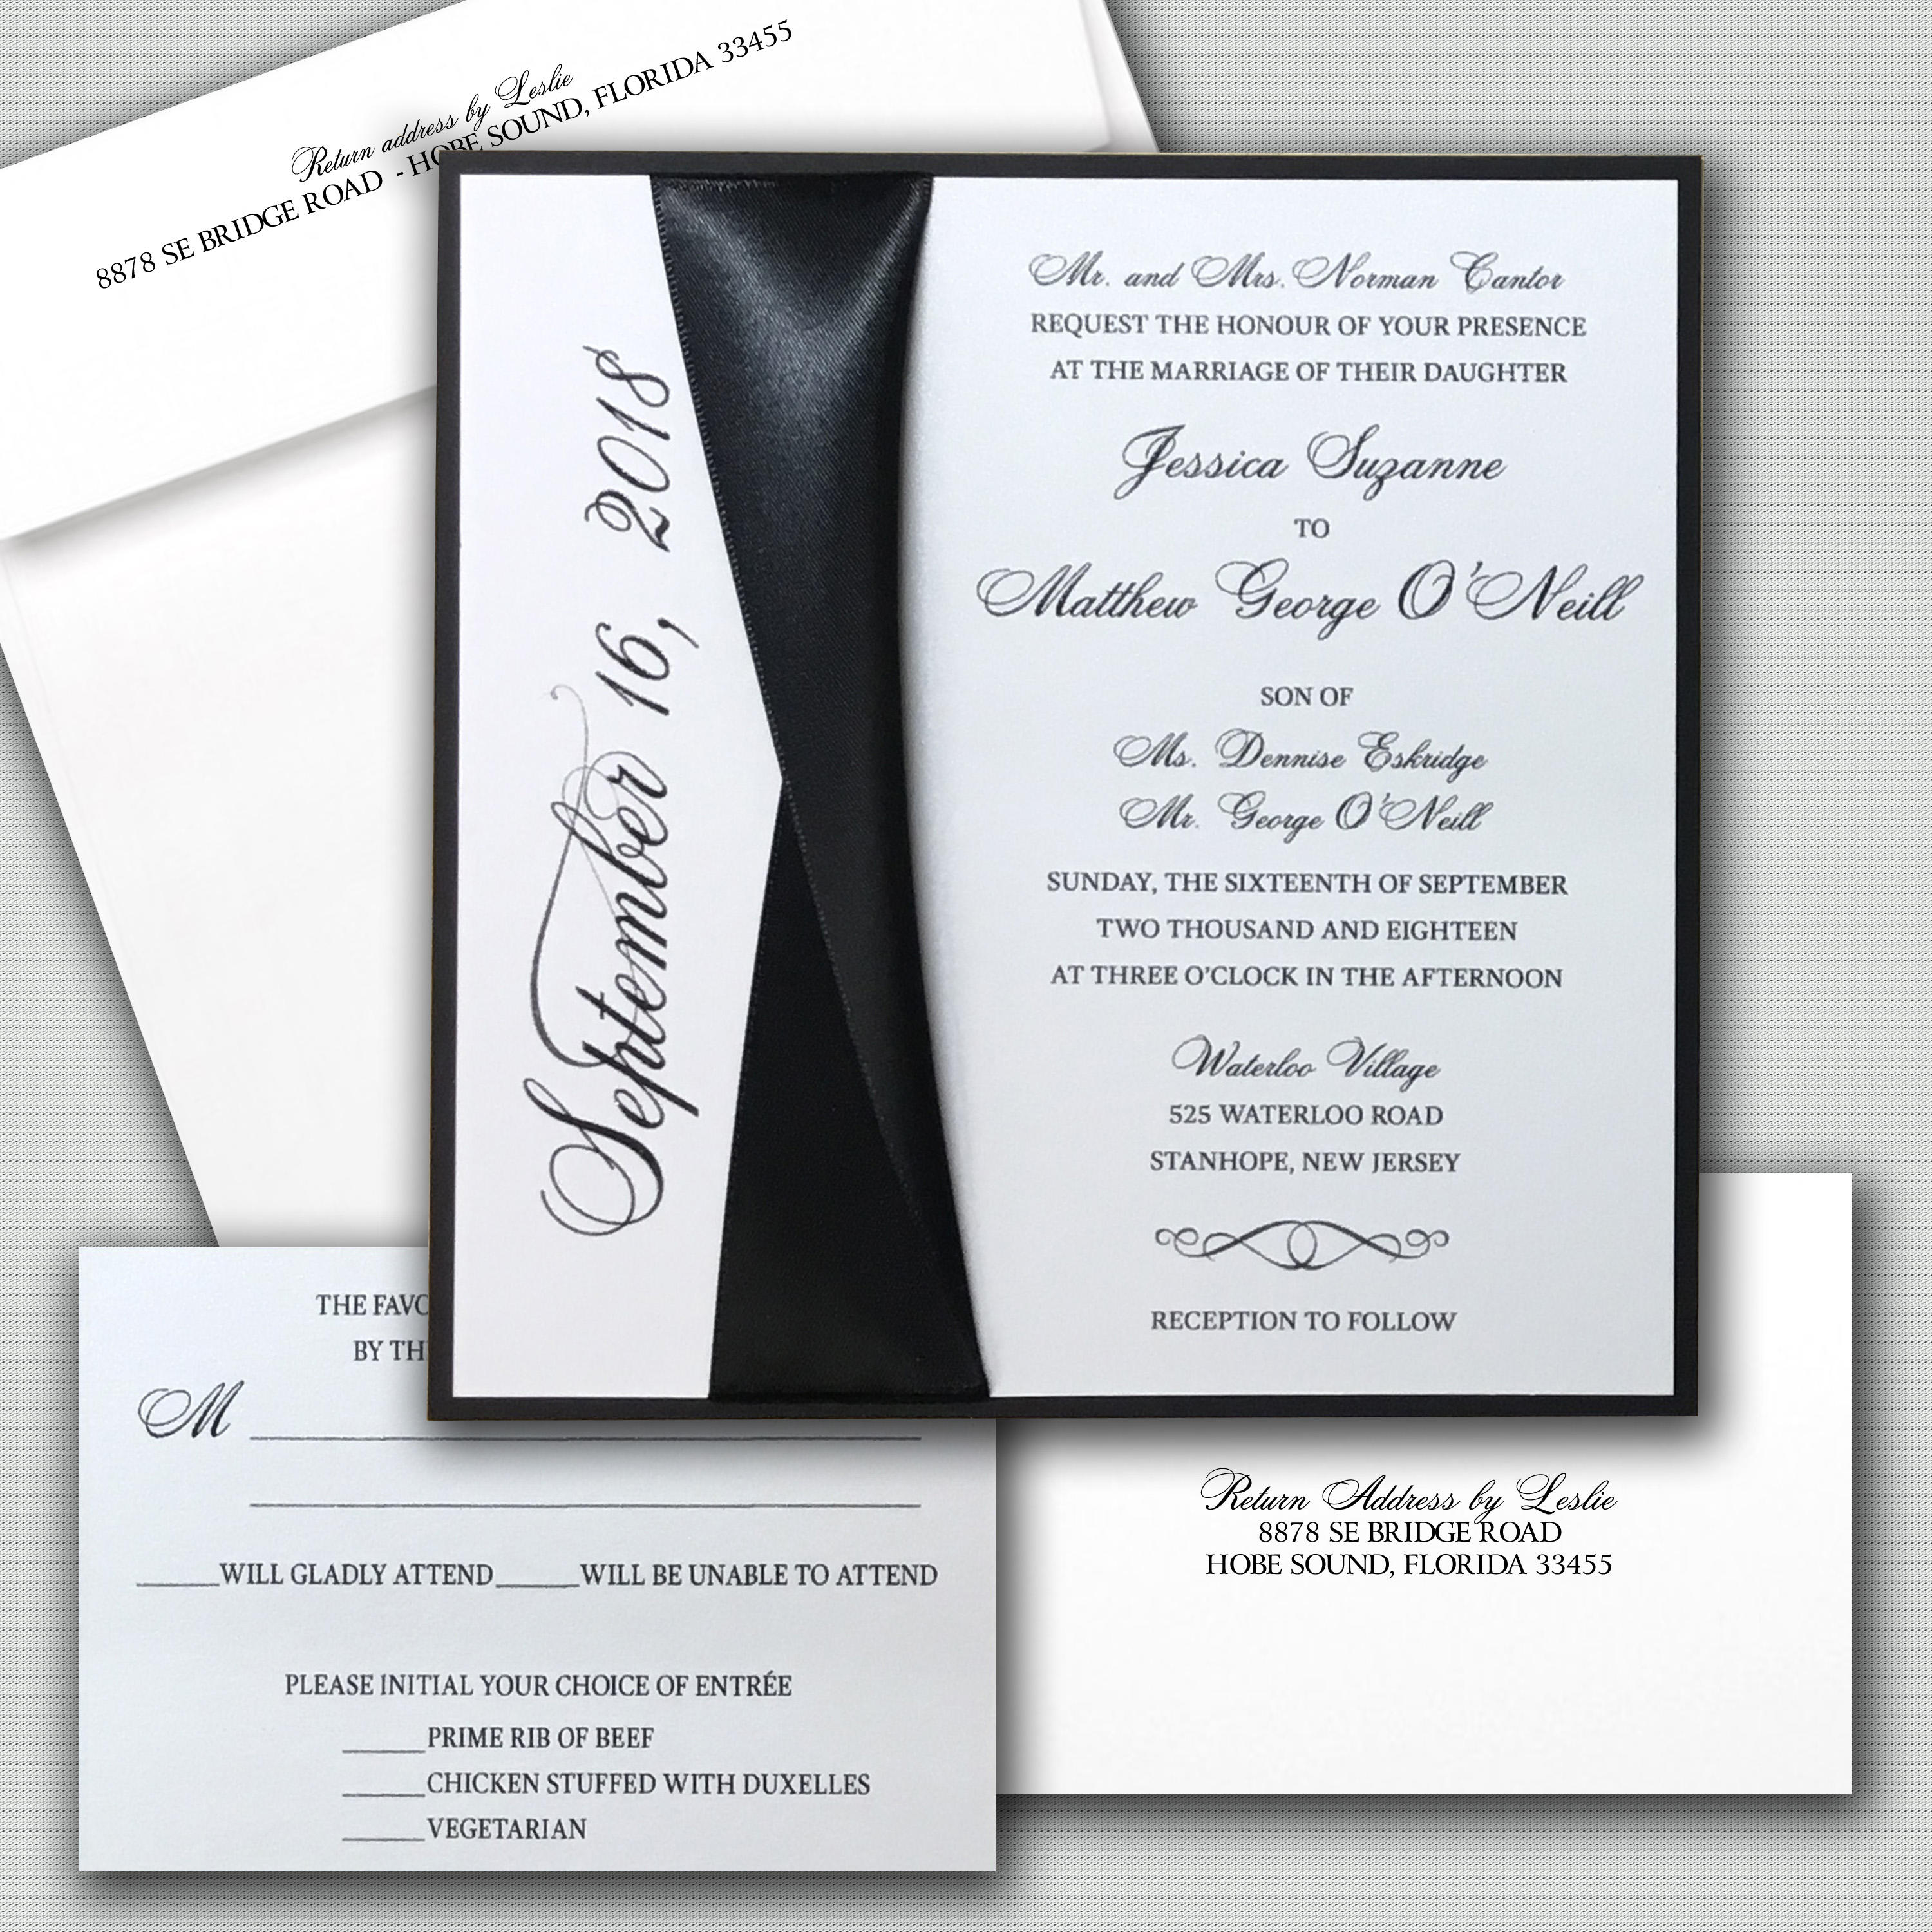 Leslie Store Wedding Invitations & Stationery image 14